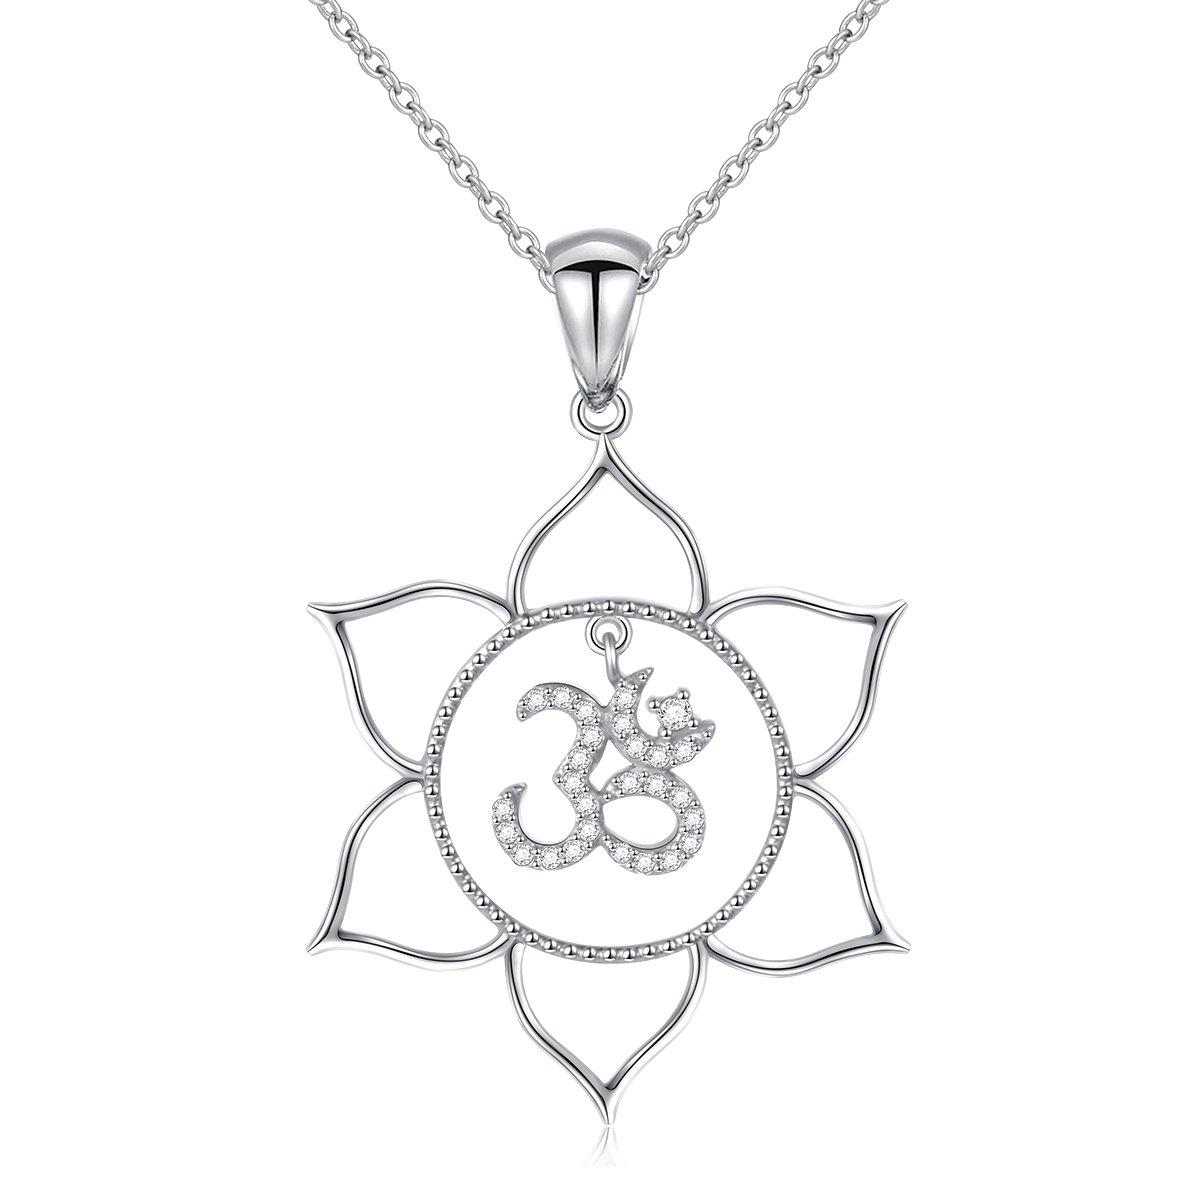 S925 sterling silver lotus flower om symbol yoga pendant necklace s925 sterling silver lotus flower om symbol yoga pendant necklace for women 18 izmirmasajfo